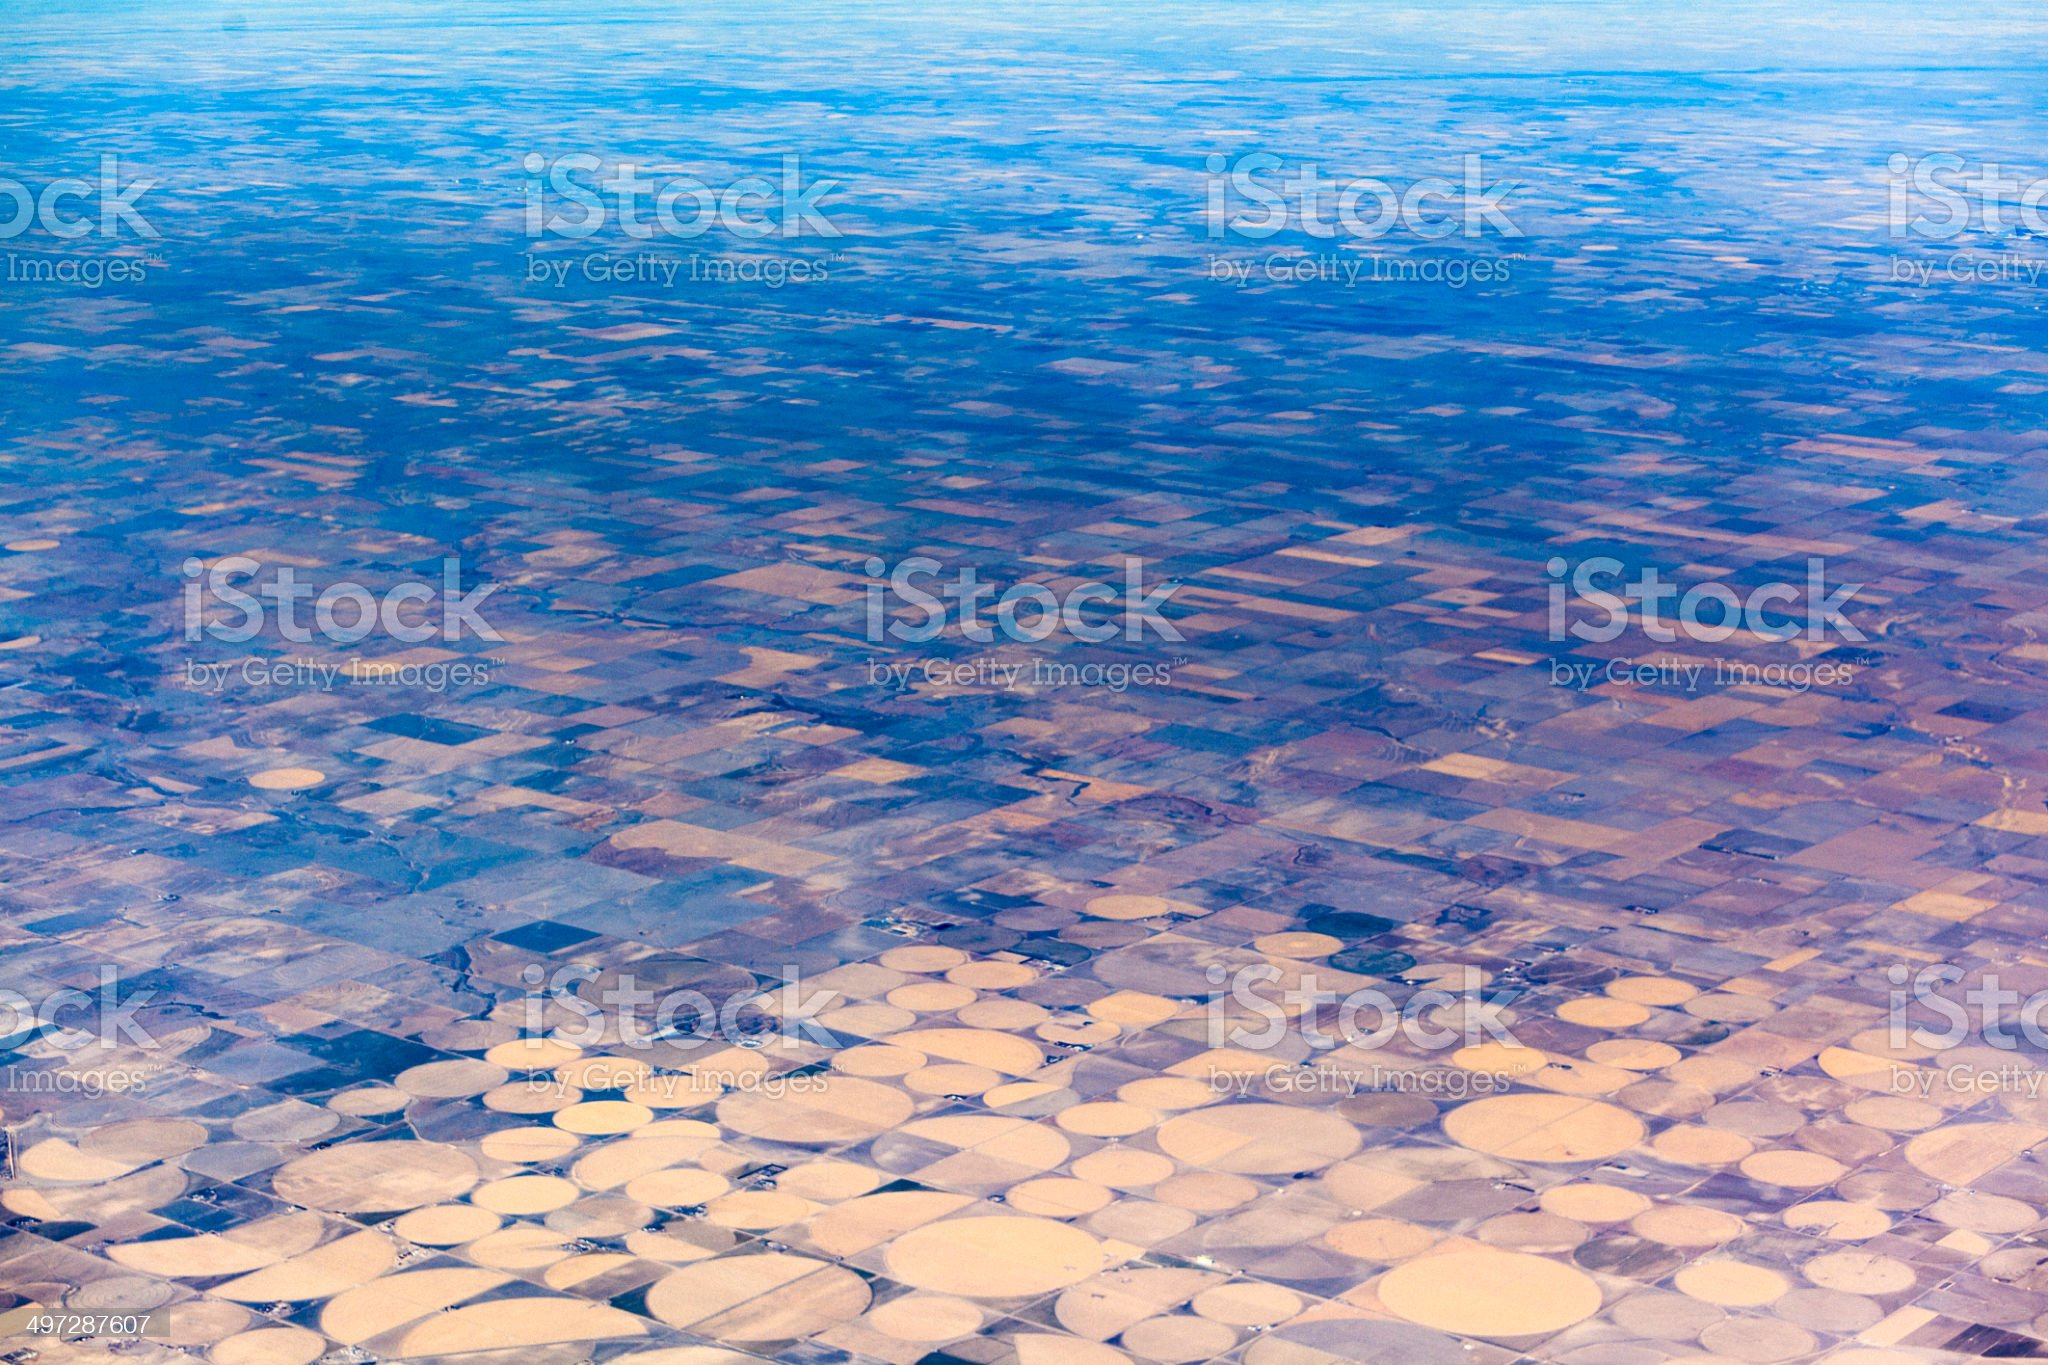 Round fields in Texas. Aerial photo. royalty-free stock photo